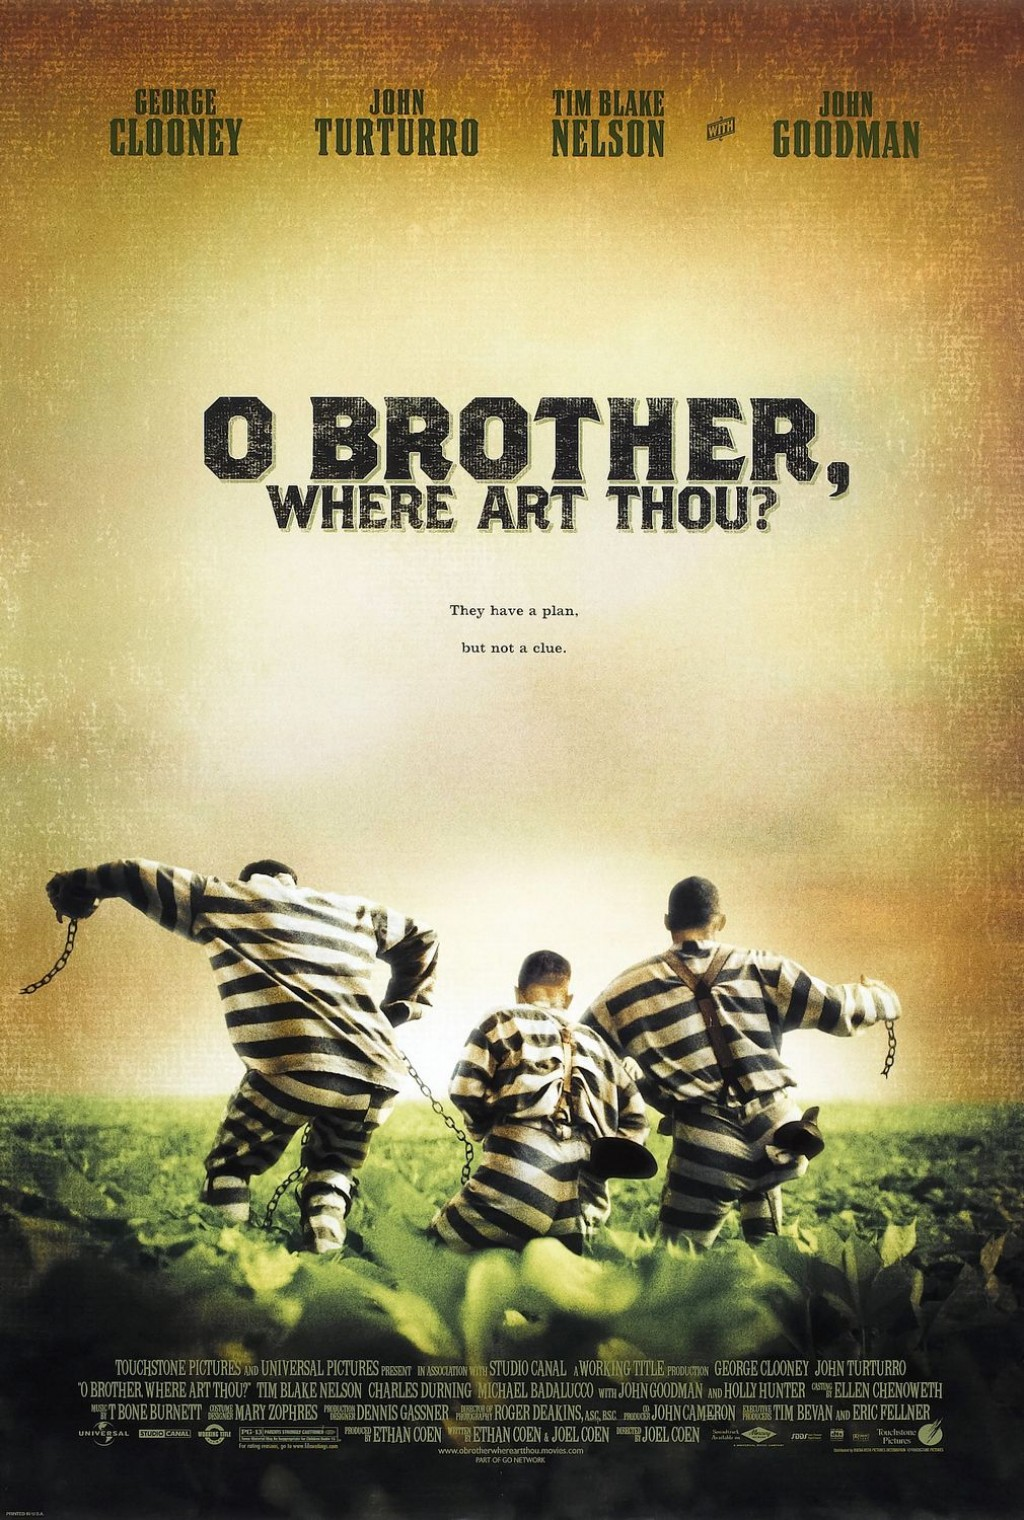 006 O Brother Where Art Thou Essay Example Ver1 Xlg Striking And The Odyssey Comparison Vs Compared To Large